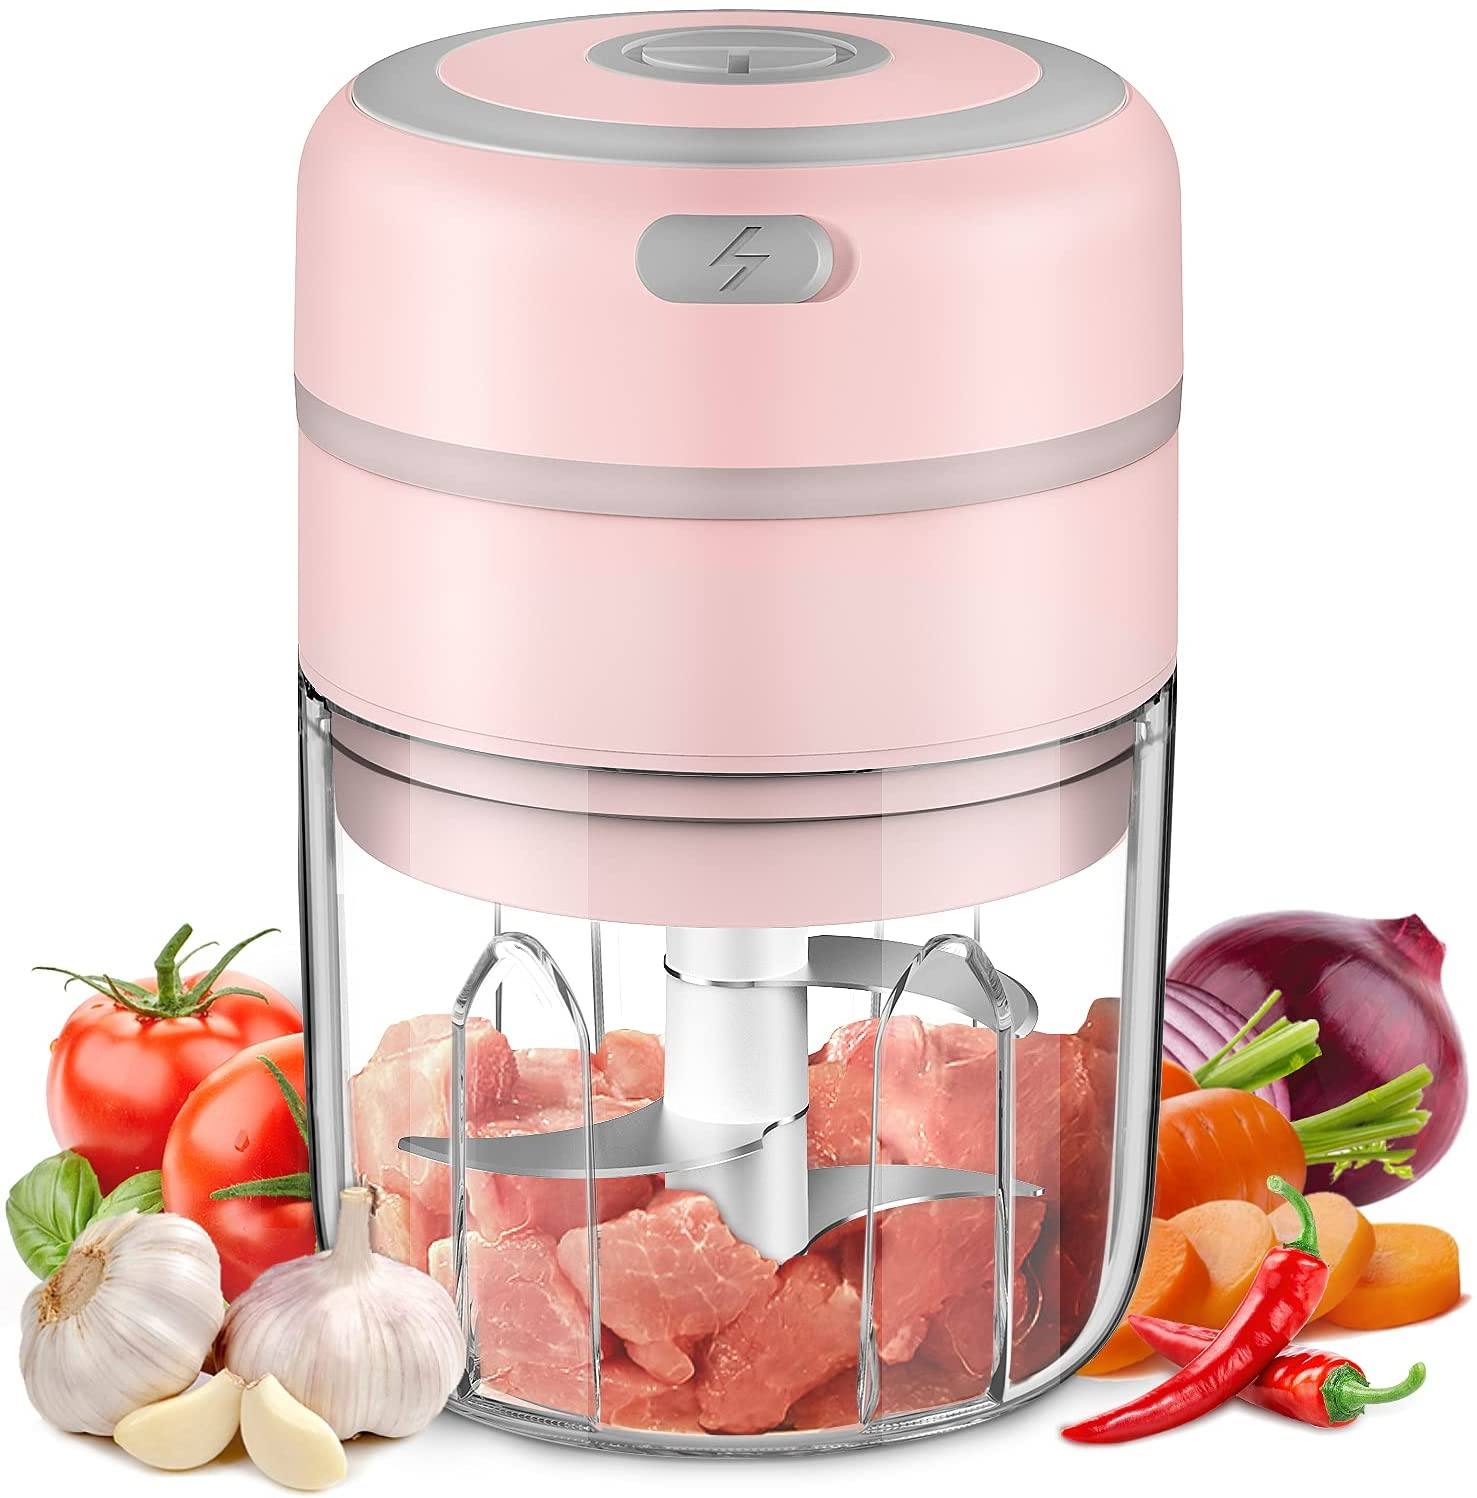 Electric Mini Garlic Chopper, Baby Food Maker 250ML, Kuopry Wireless Portable Food Processor for Meat/Vegetables/Chop Fruits/Onion/Garlic Peeler, Mini Chopper Food Processor-Pink